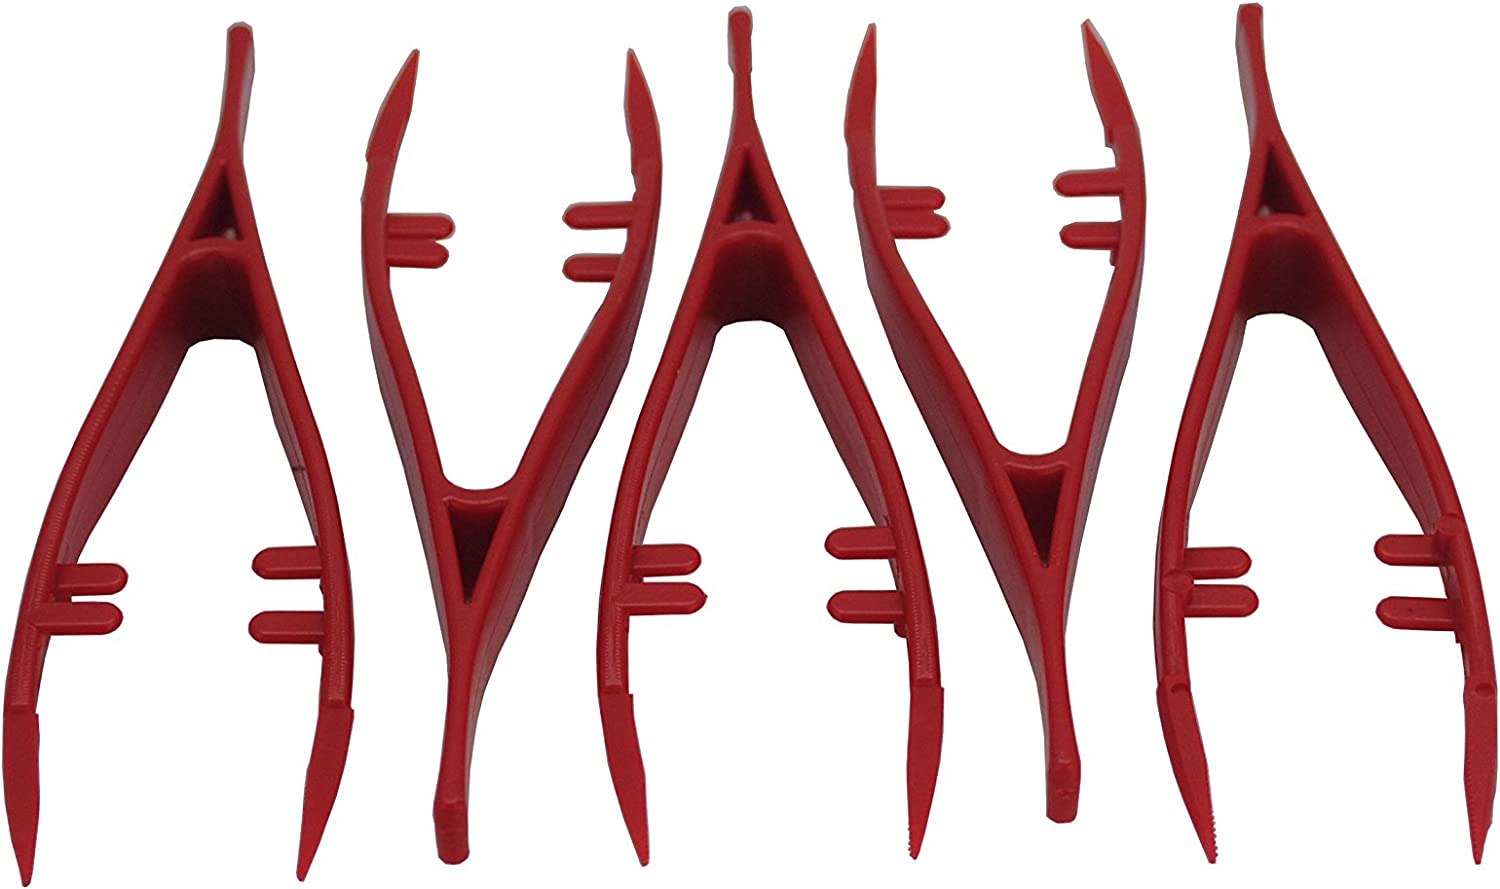 Free UK Postage. Proops Set of 5 Multi-Purpose 130mm Red Fine Point Pointed Plastic Tweezers with Serrated Tips. S7789